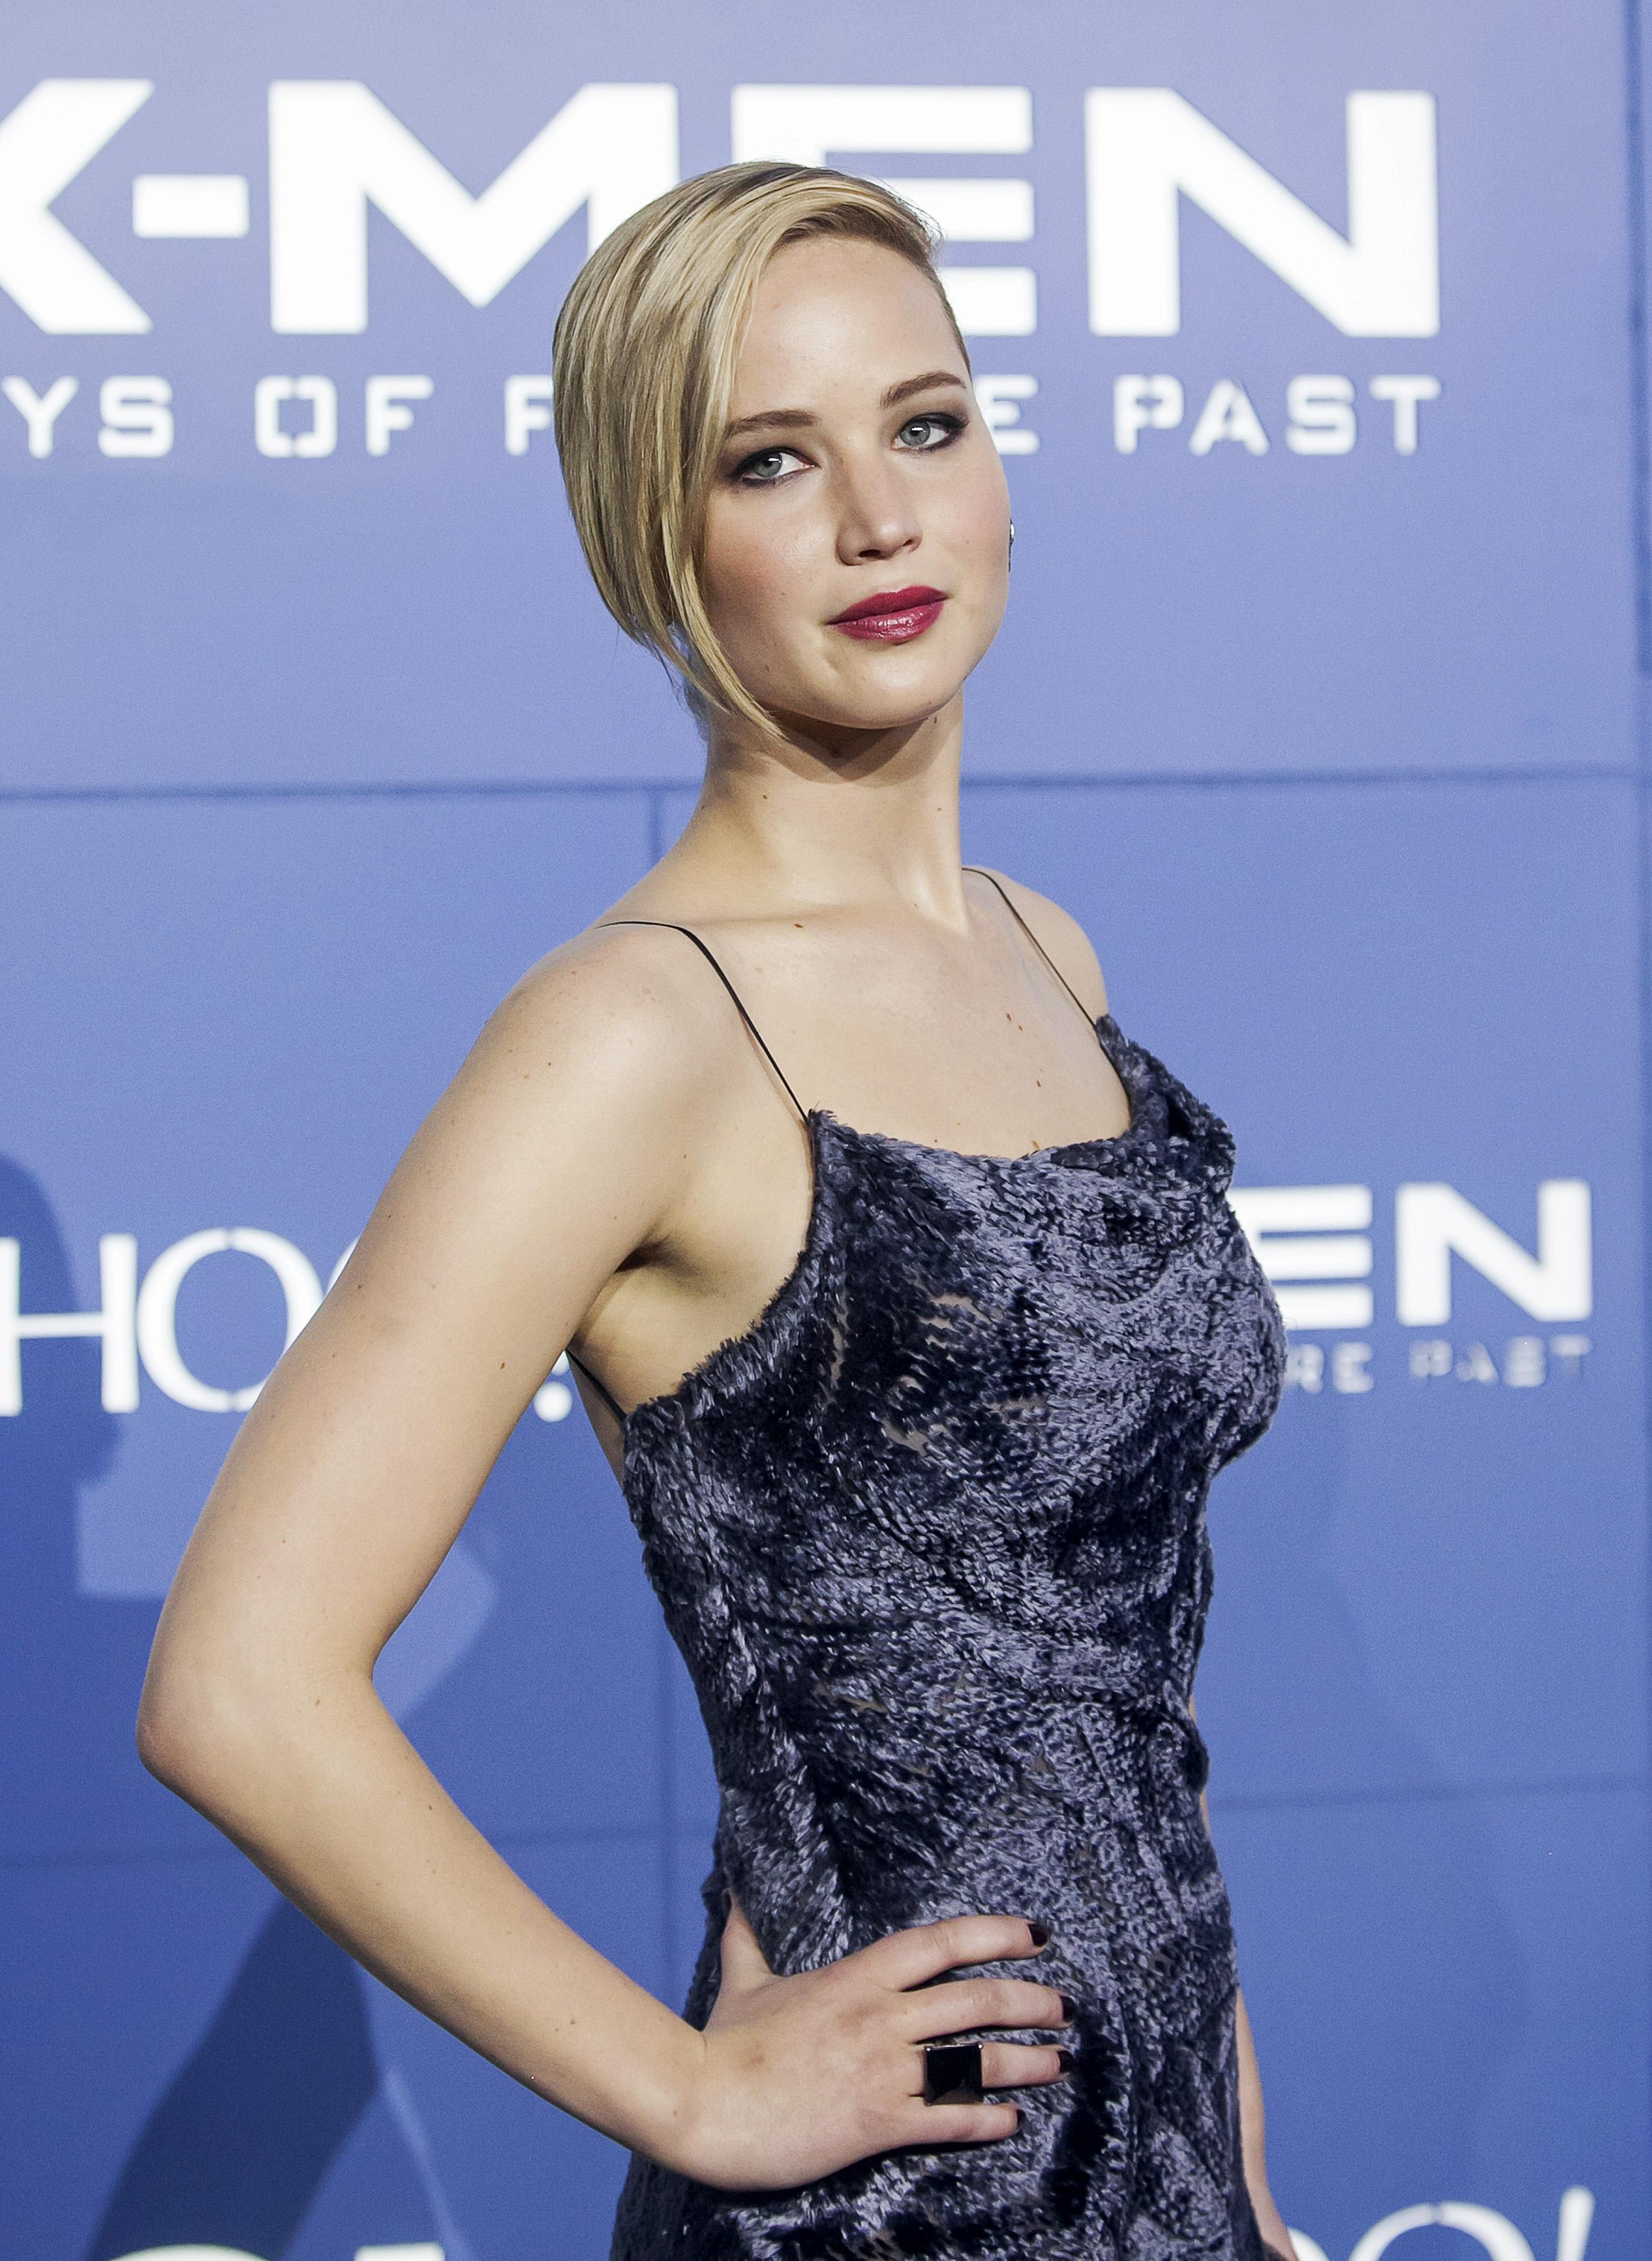 Jennifer Lawrence Workout Plan for 'Hunger Games'